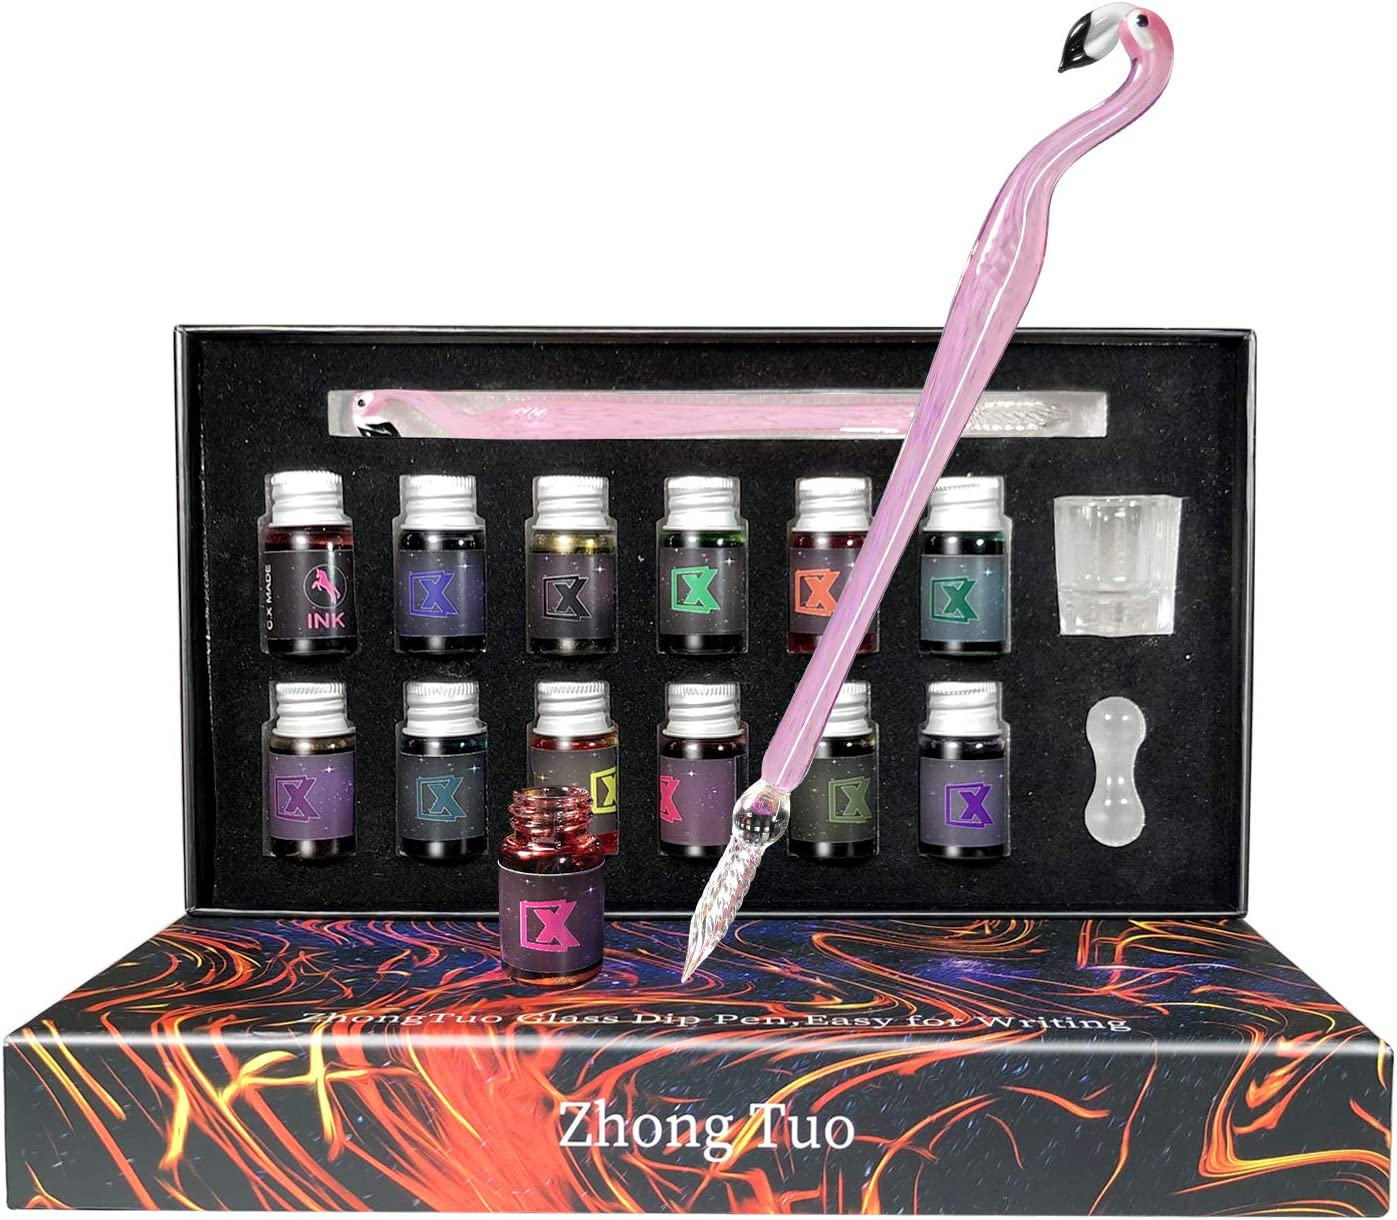 Glass Dip Pen 15Pcs Calligraphy Pens Set with12 Colors Inks Cute Glass Caligraphy kits for Beginners Art Pen Set for Writing Gift Drawing,Decoration